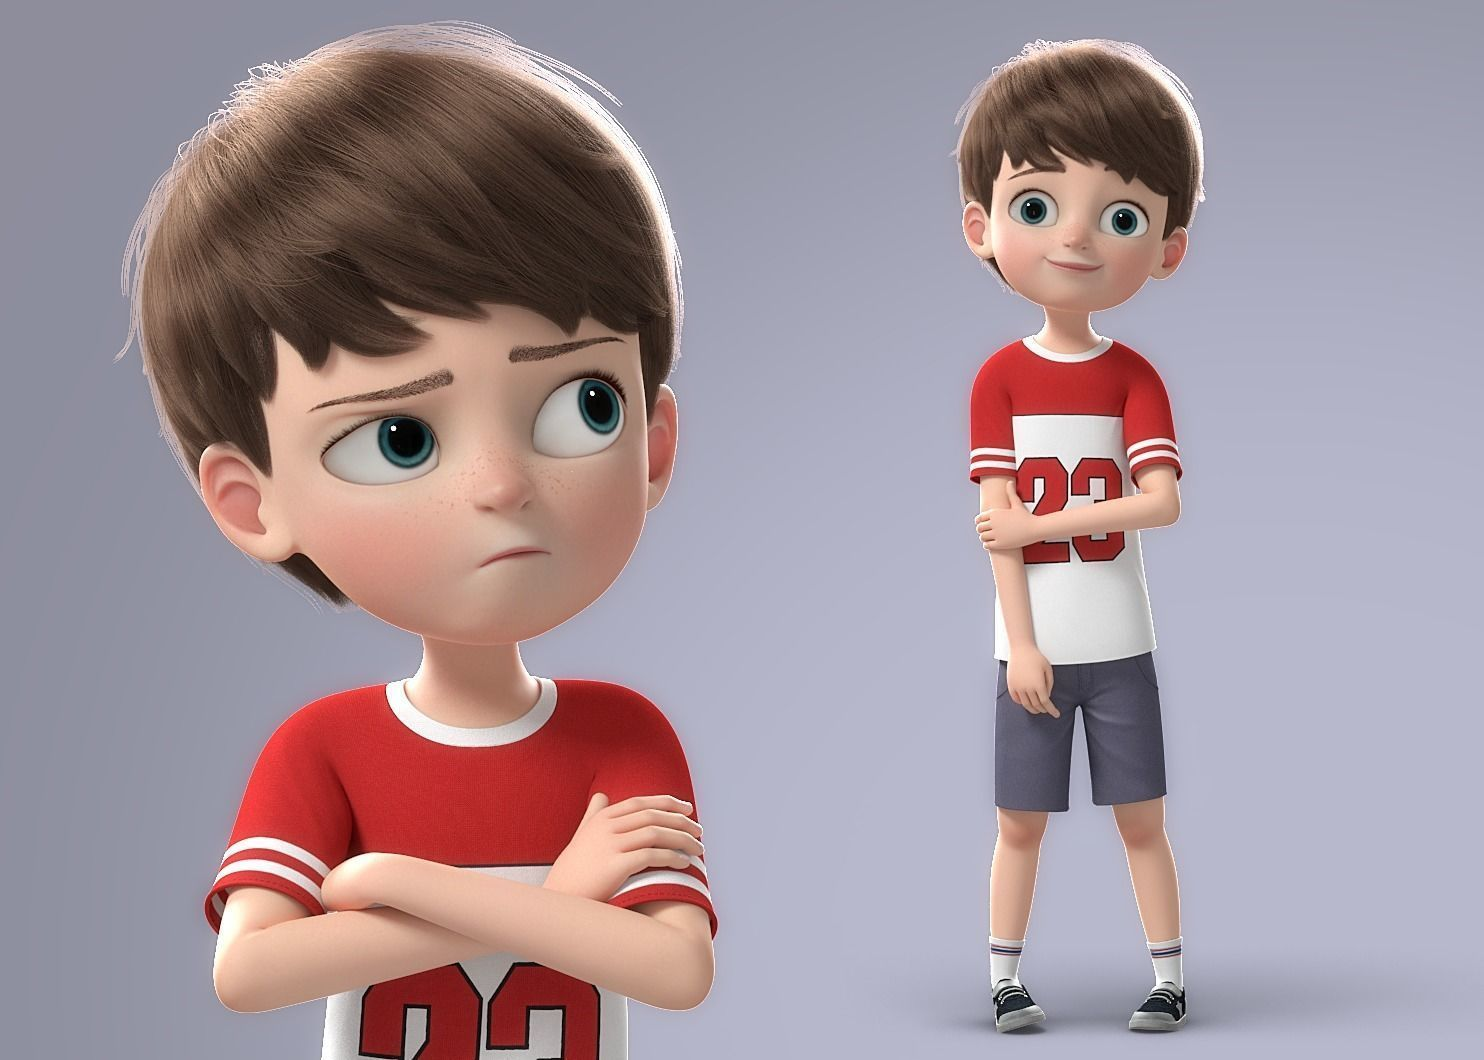 Cartoon Boy Rigged By 3dcartoon You Can Buy This 3d Model For 179 On Https Www Cgtrader Co Boy Cartoon Characters Kids Cartoon Characters Cartoon Boy